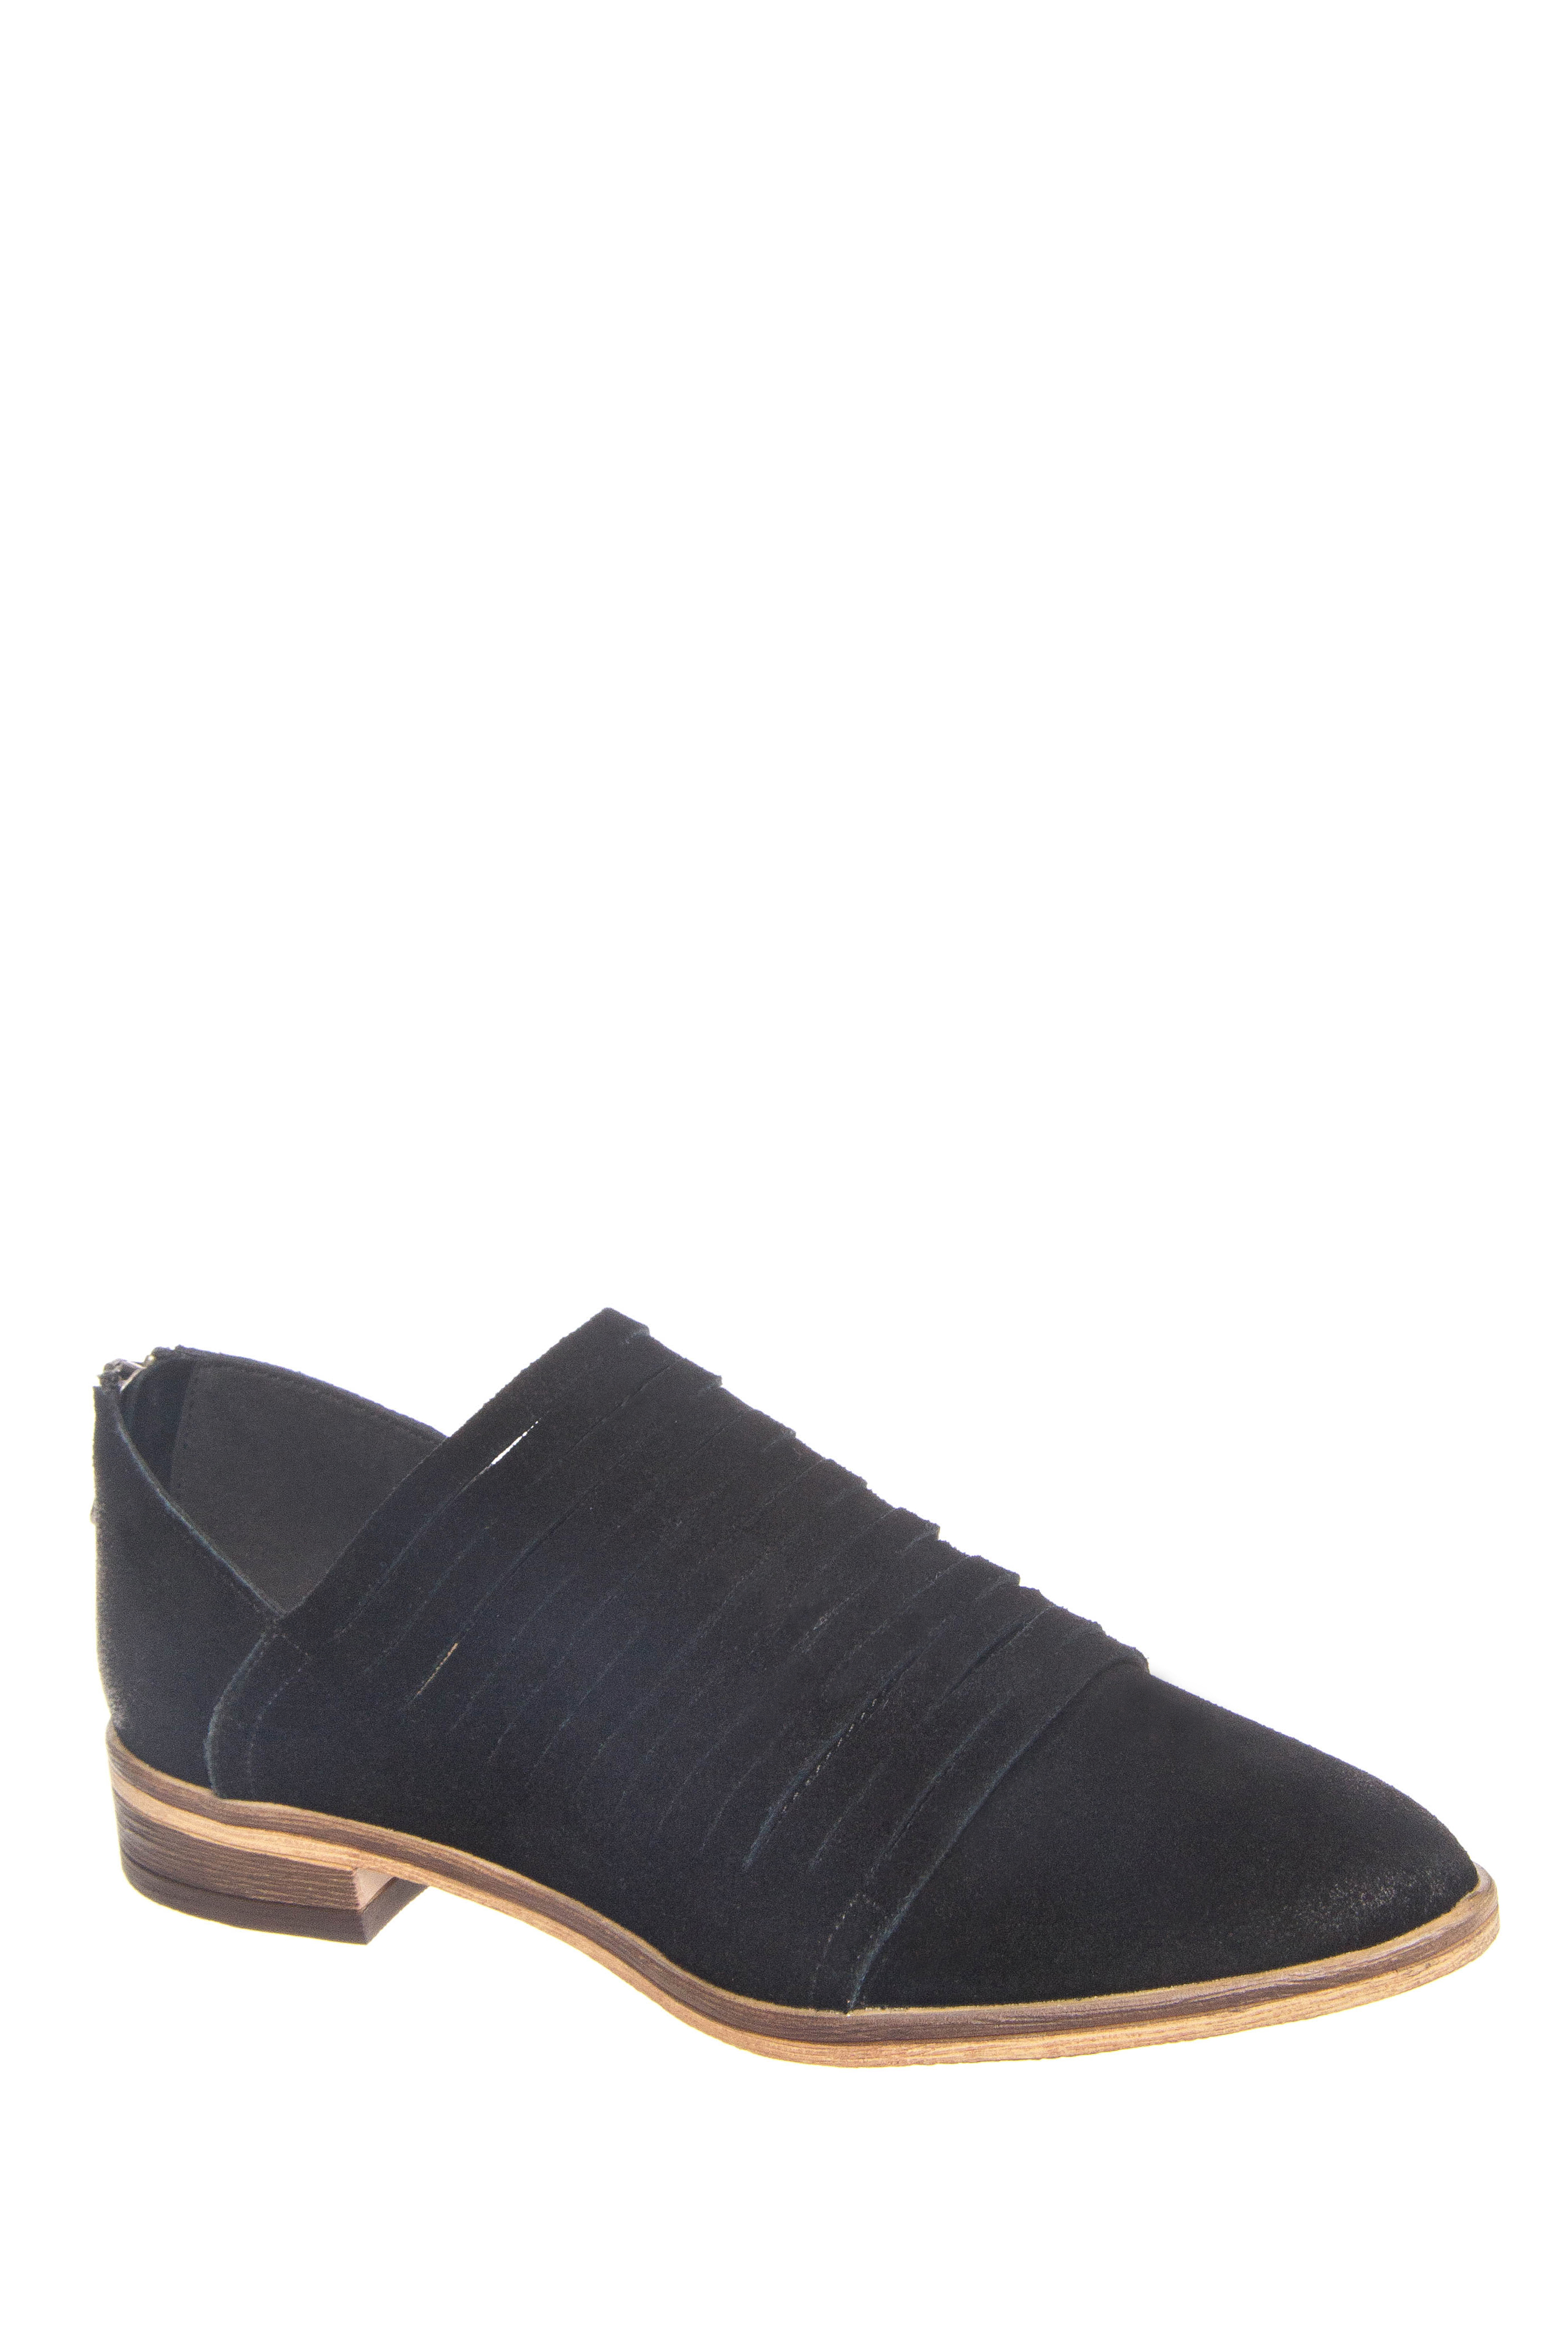 Chinese Laundry Danika Flats Suede Booties - Black Suede